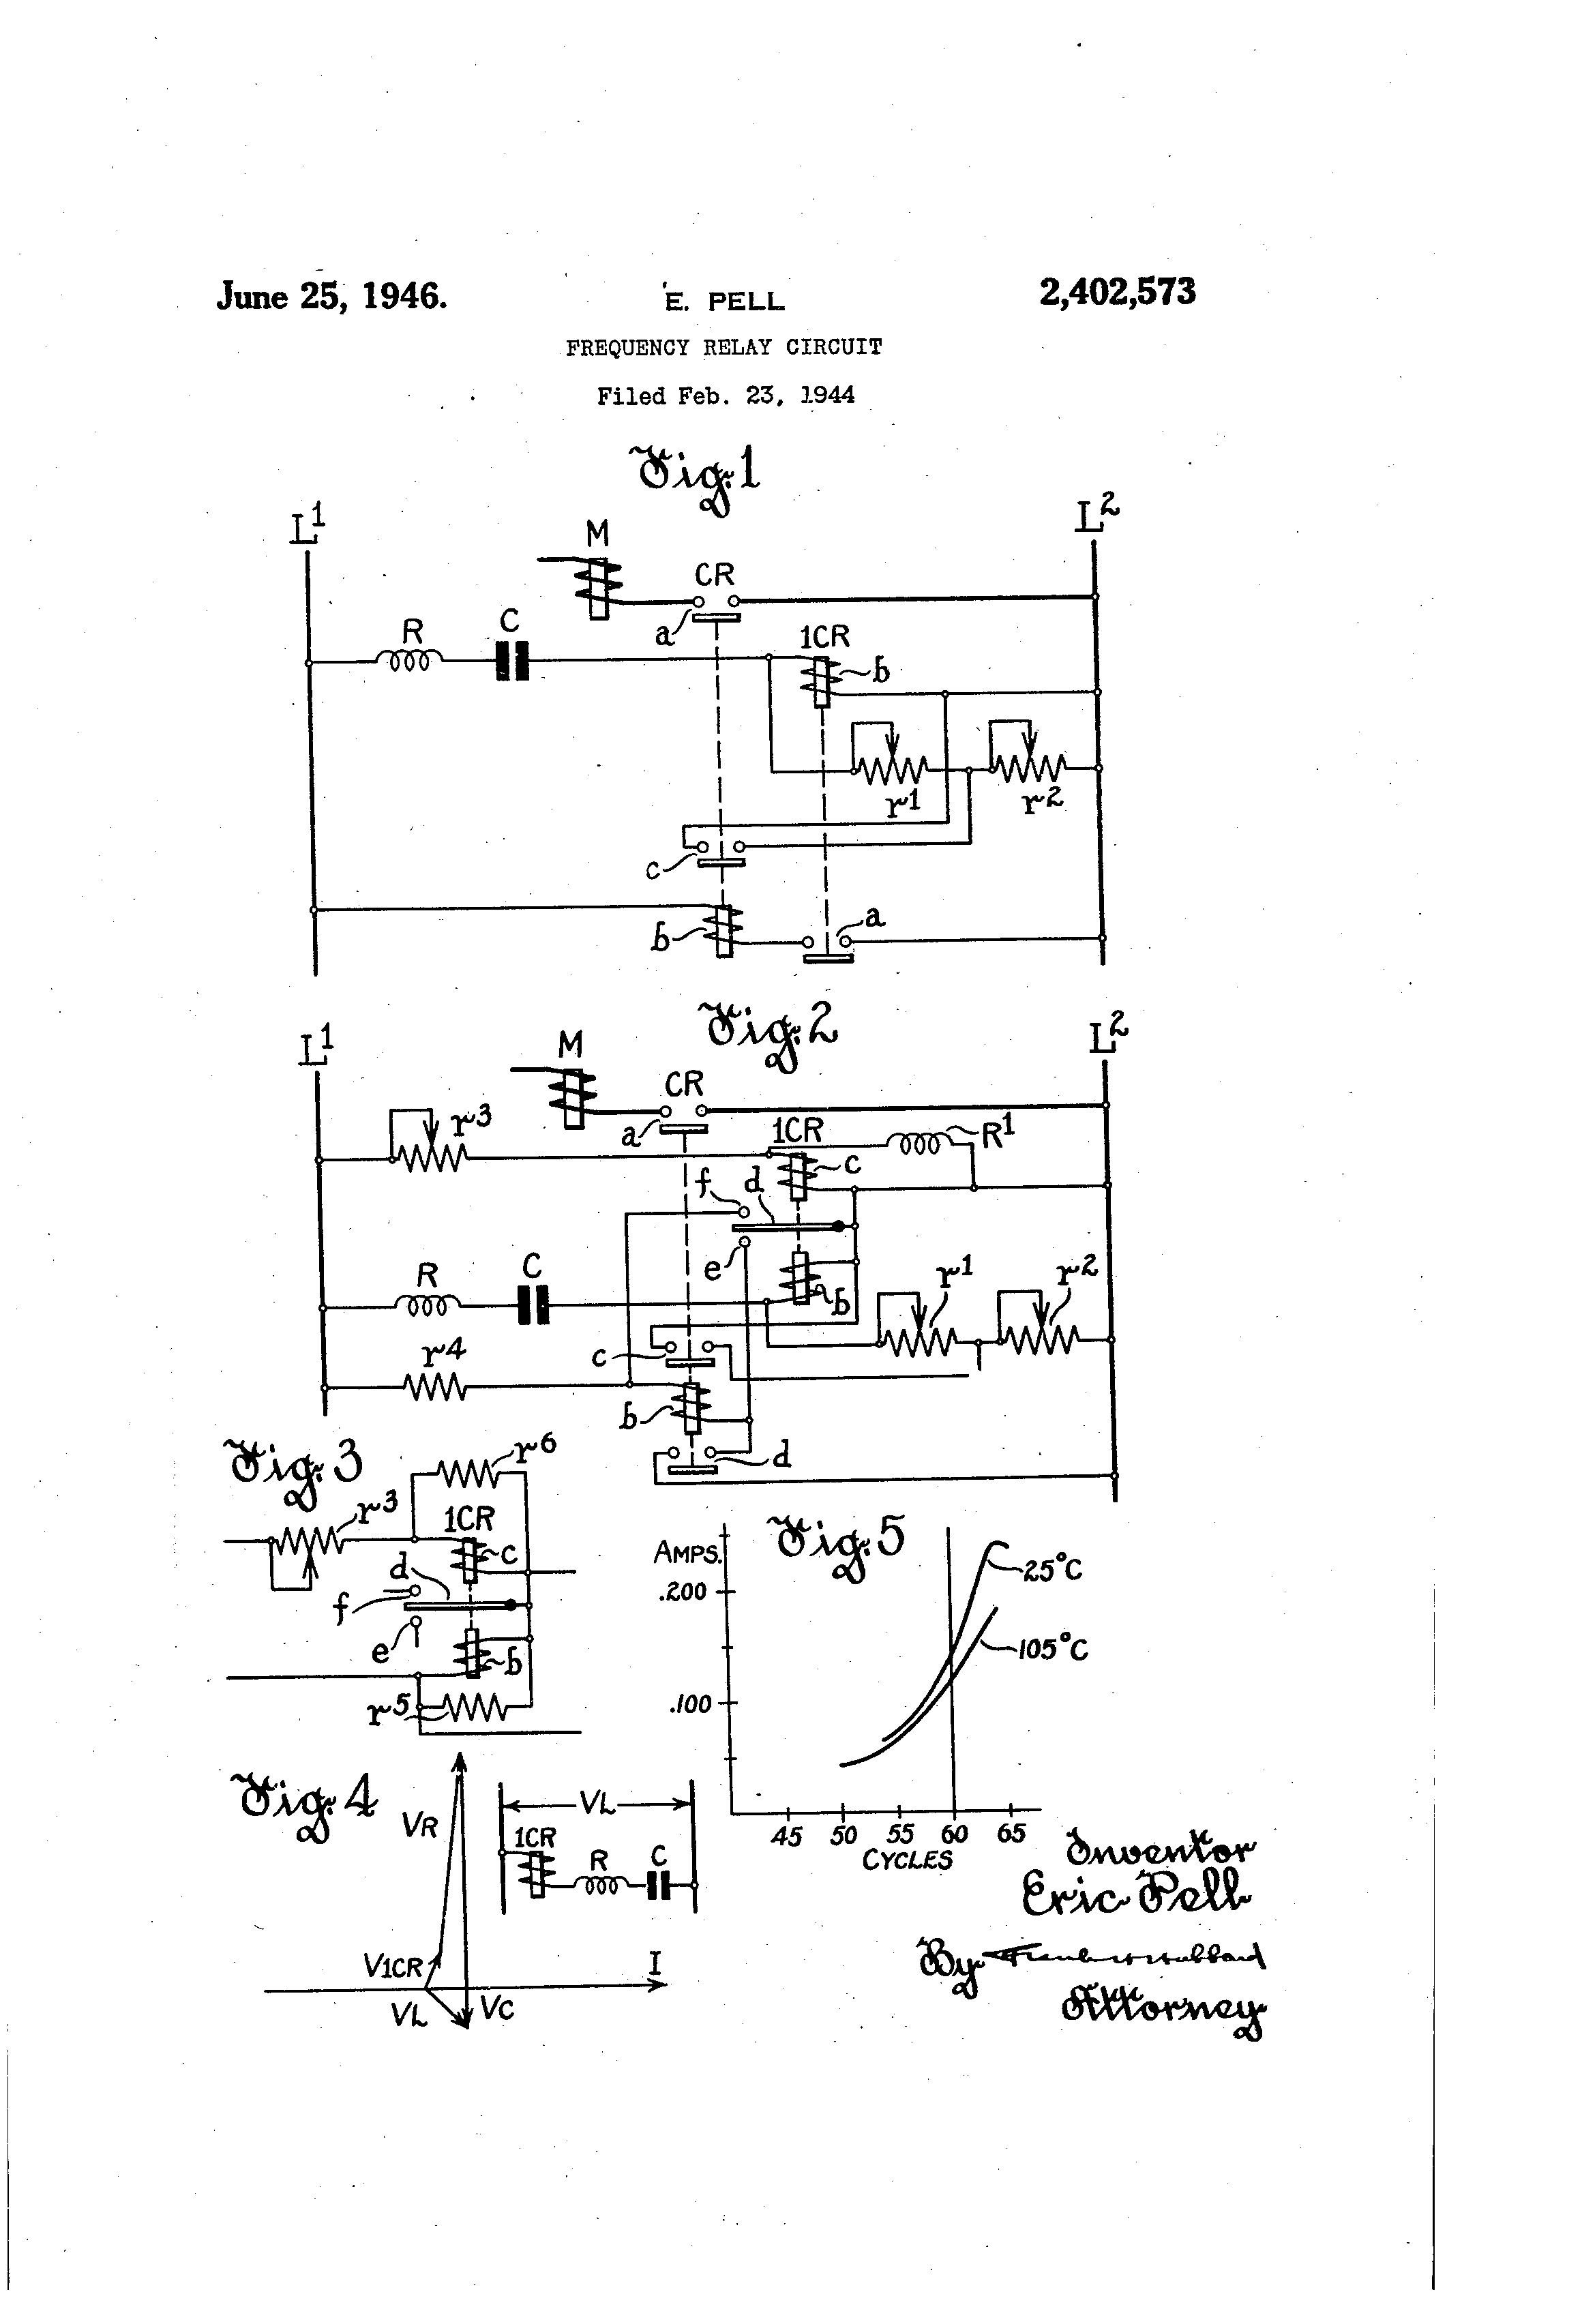 Frequency Relay Circuit Diagram Electrical Wiring Diagrams Analog Meter Tradeoficcom Patent Us2402573 Circuits Google Patents 12v With